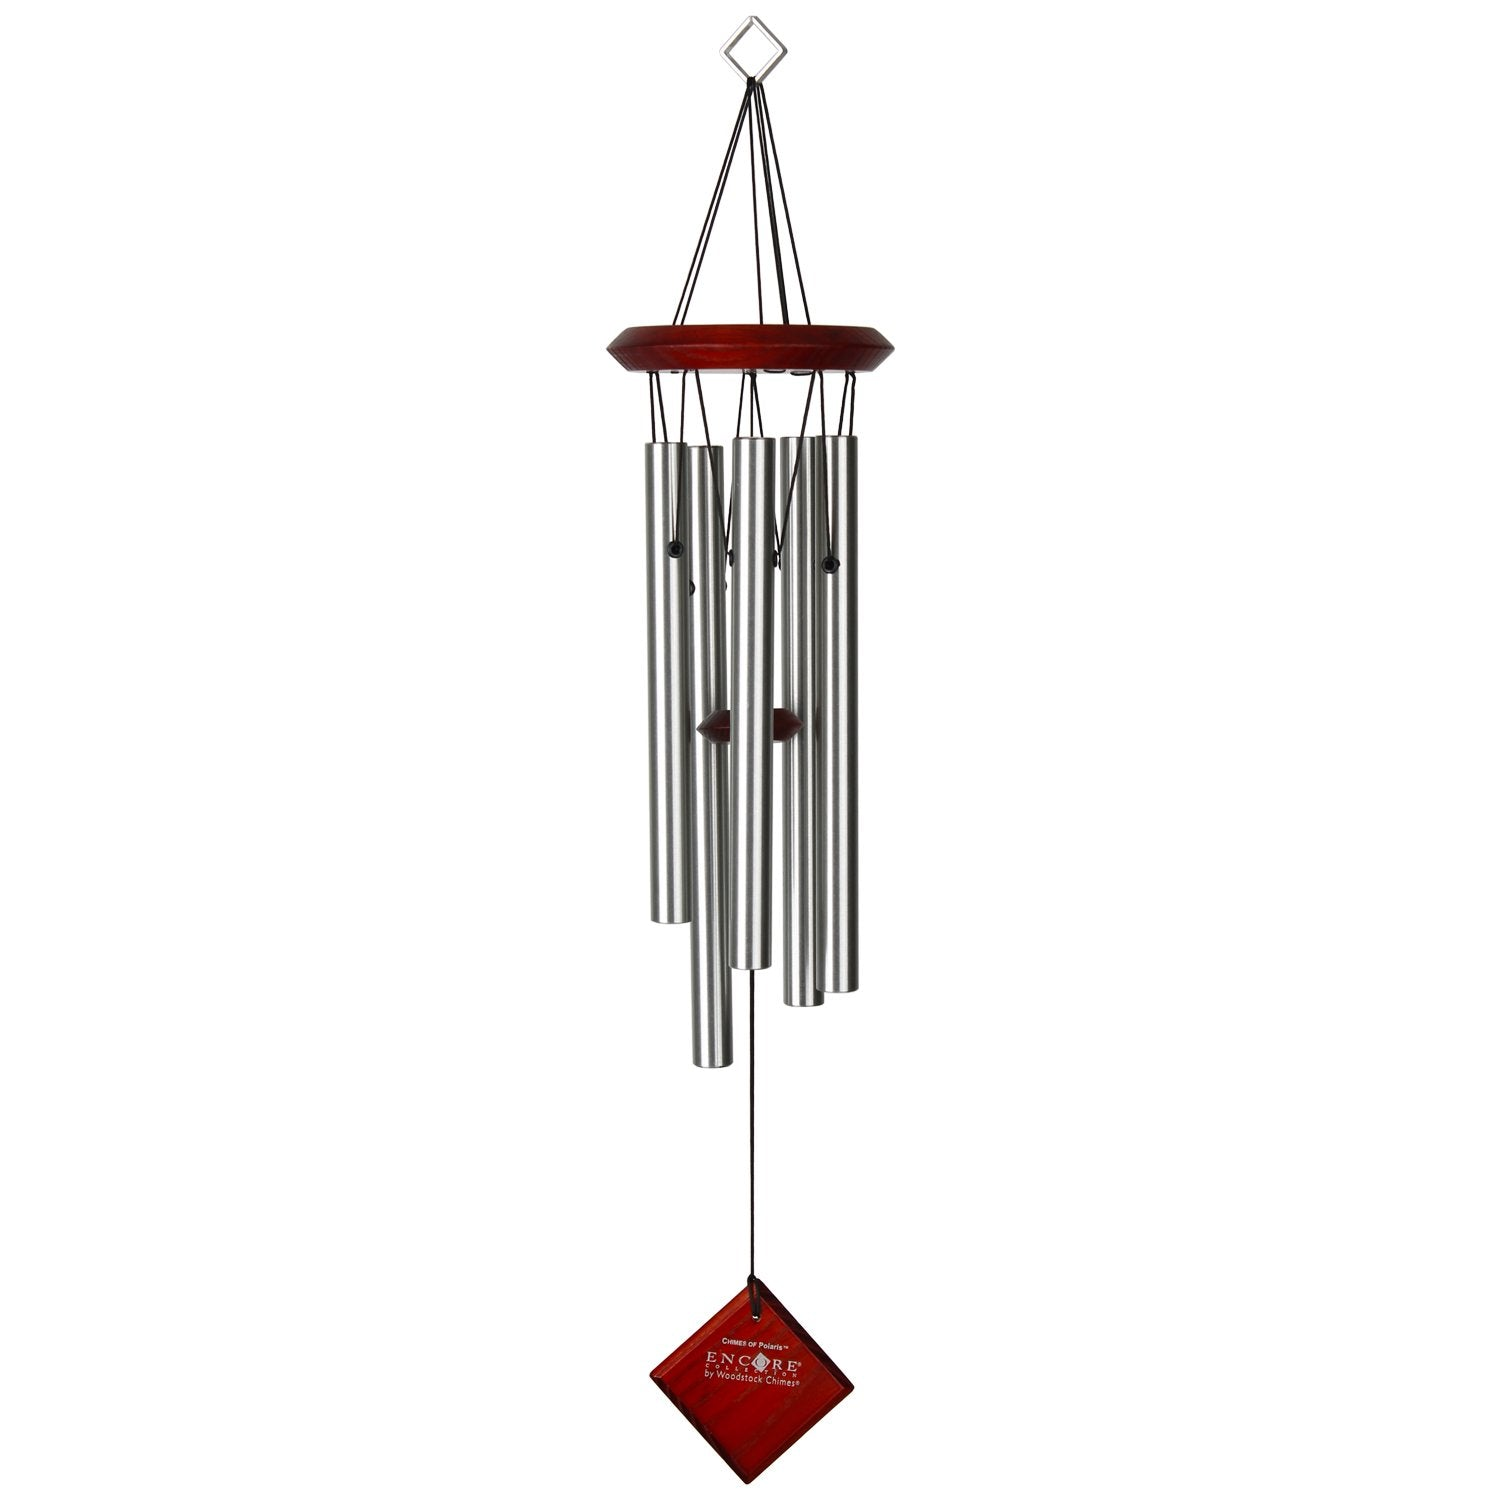 Encore Chimes of Polaris - Silver full product image